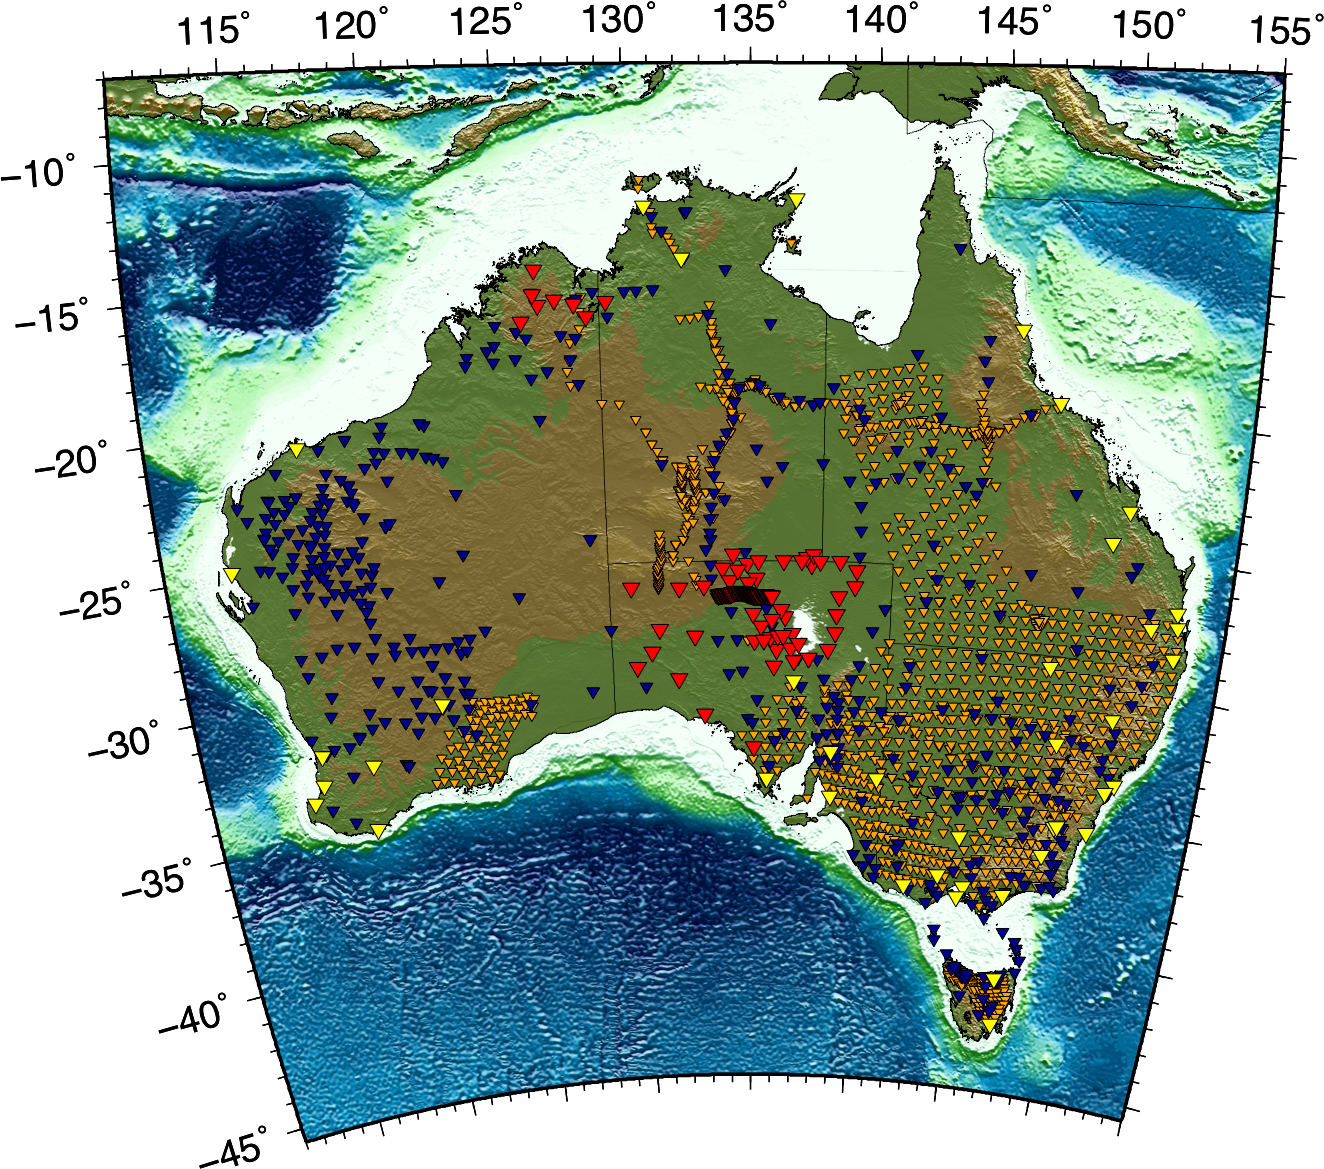 Map of Australia showing AuScope seismic stations, past and present: currently deployed seismic stations (red triangles), AuSis stations (yellow triangles), past Australian broadband seismic experiments (blue triangles), past Australian short period seismic experiments (orange triangle). All data available through  AusPASS .